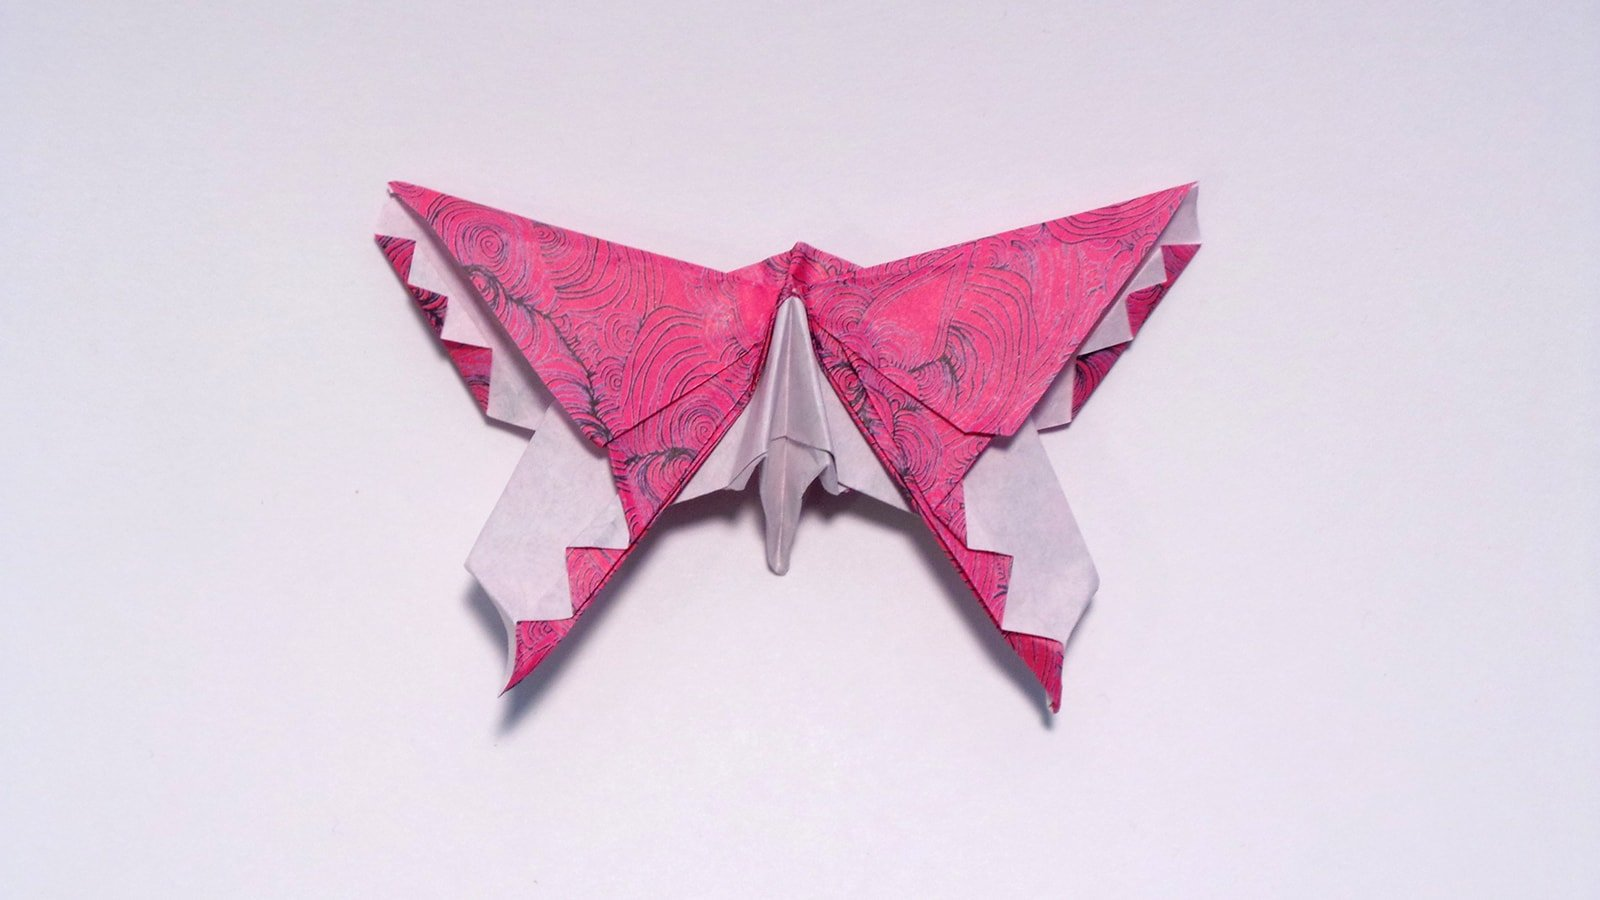 Origami Butterfly Template with Diy Instruction | Free Printable ... | 900x1600